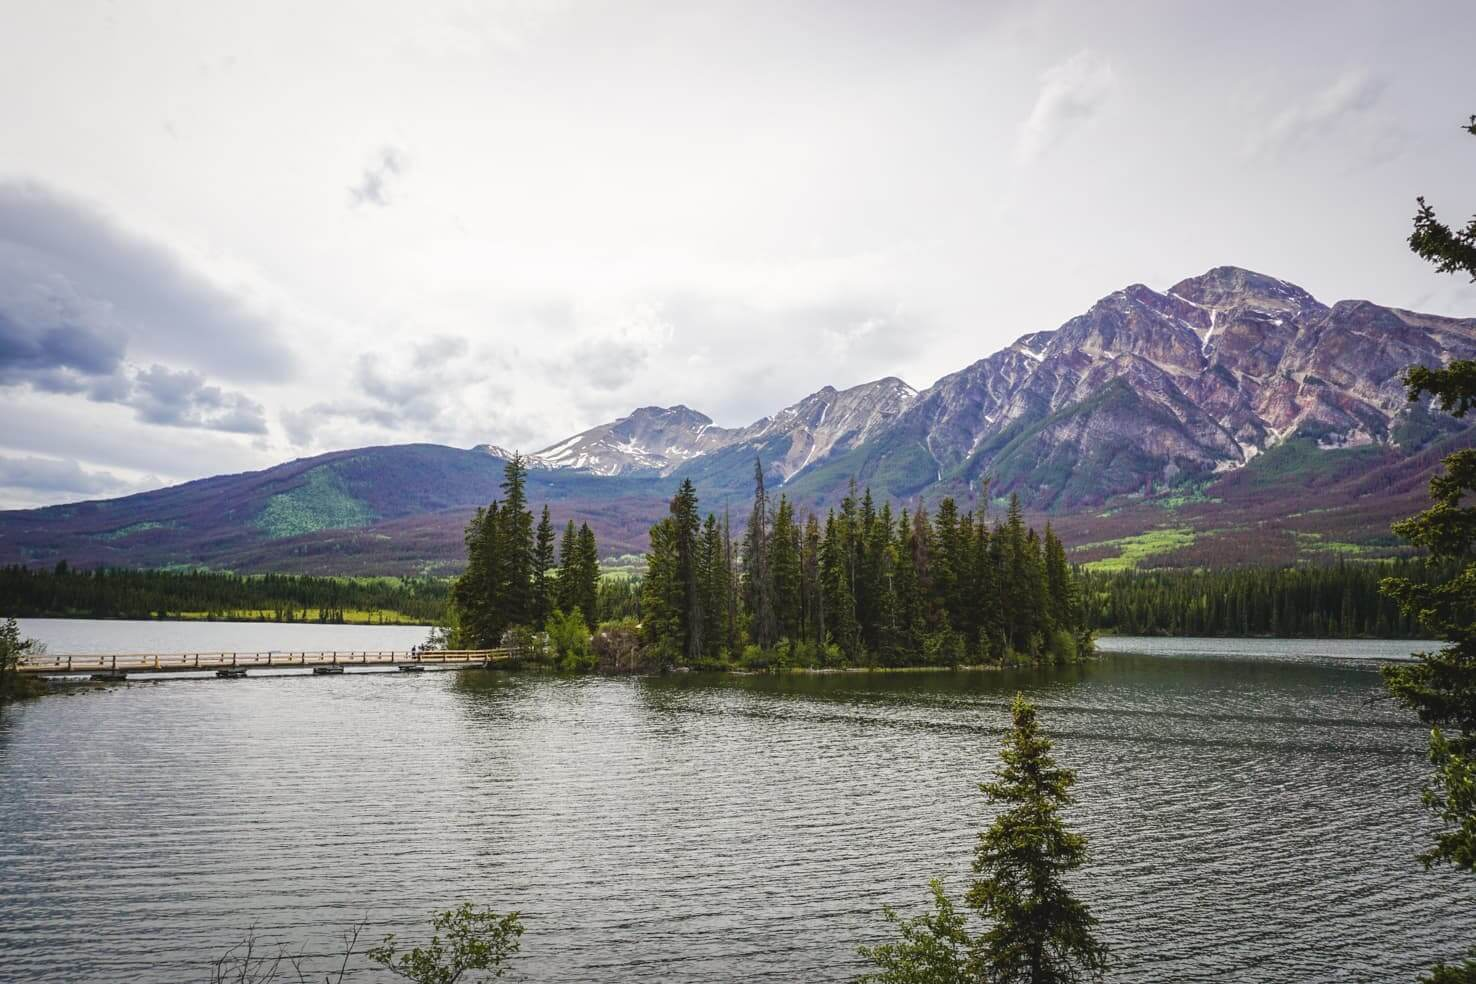 Things to do in Jasper National Park - 12 Visit the picturesque Pyramid Island